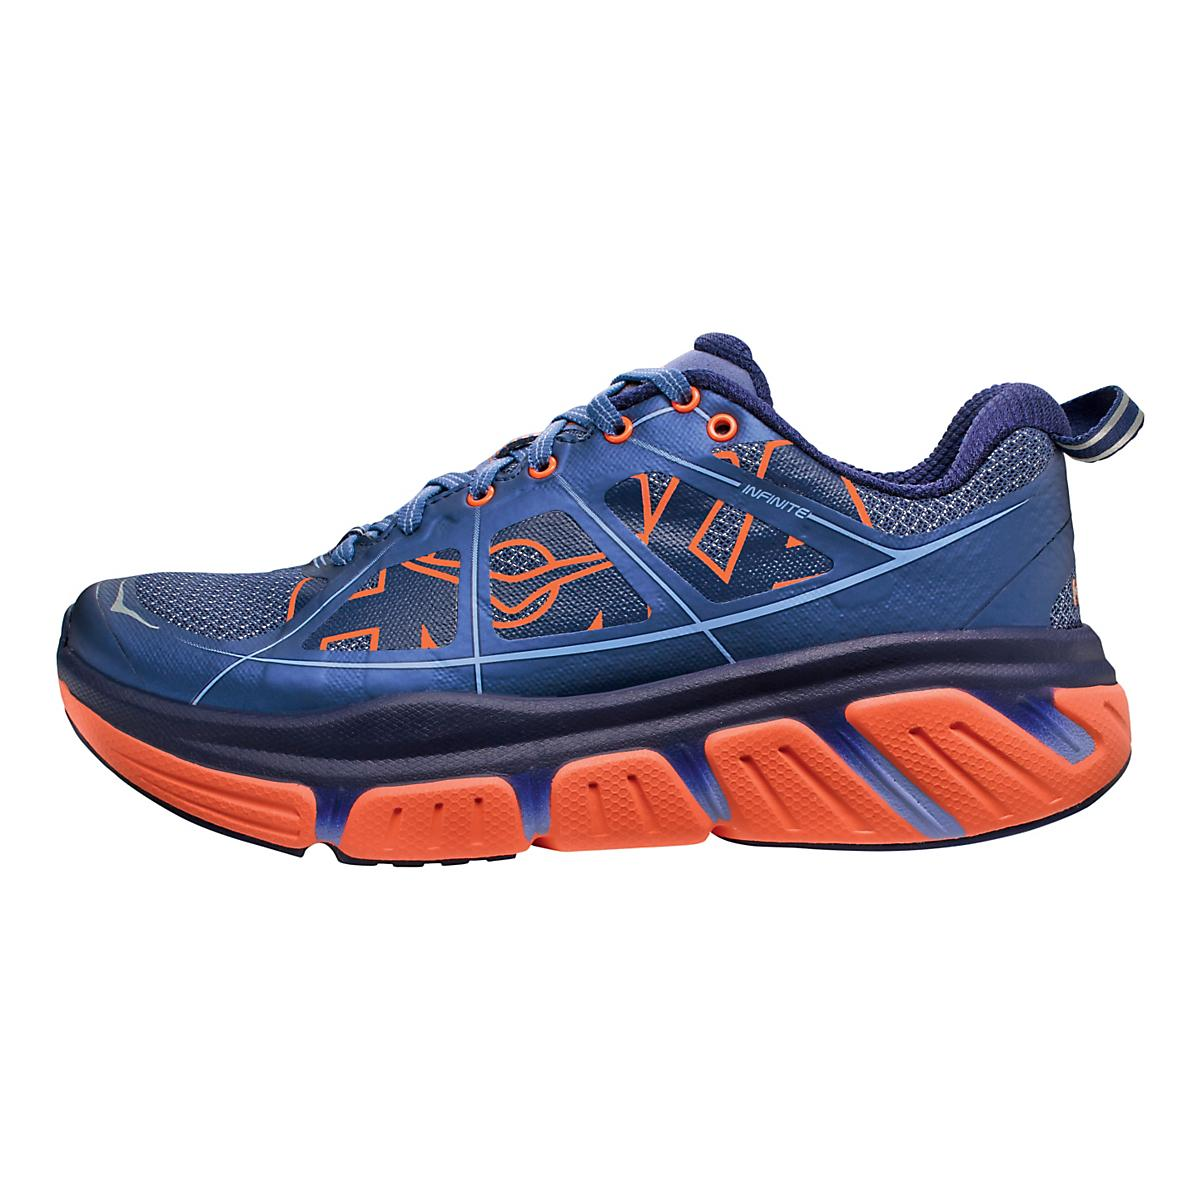 Women's Hoka One One�Infinite